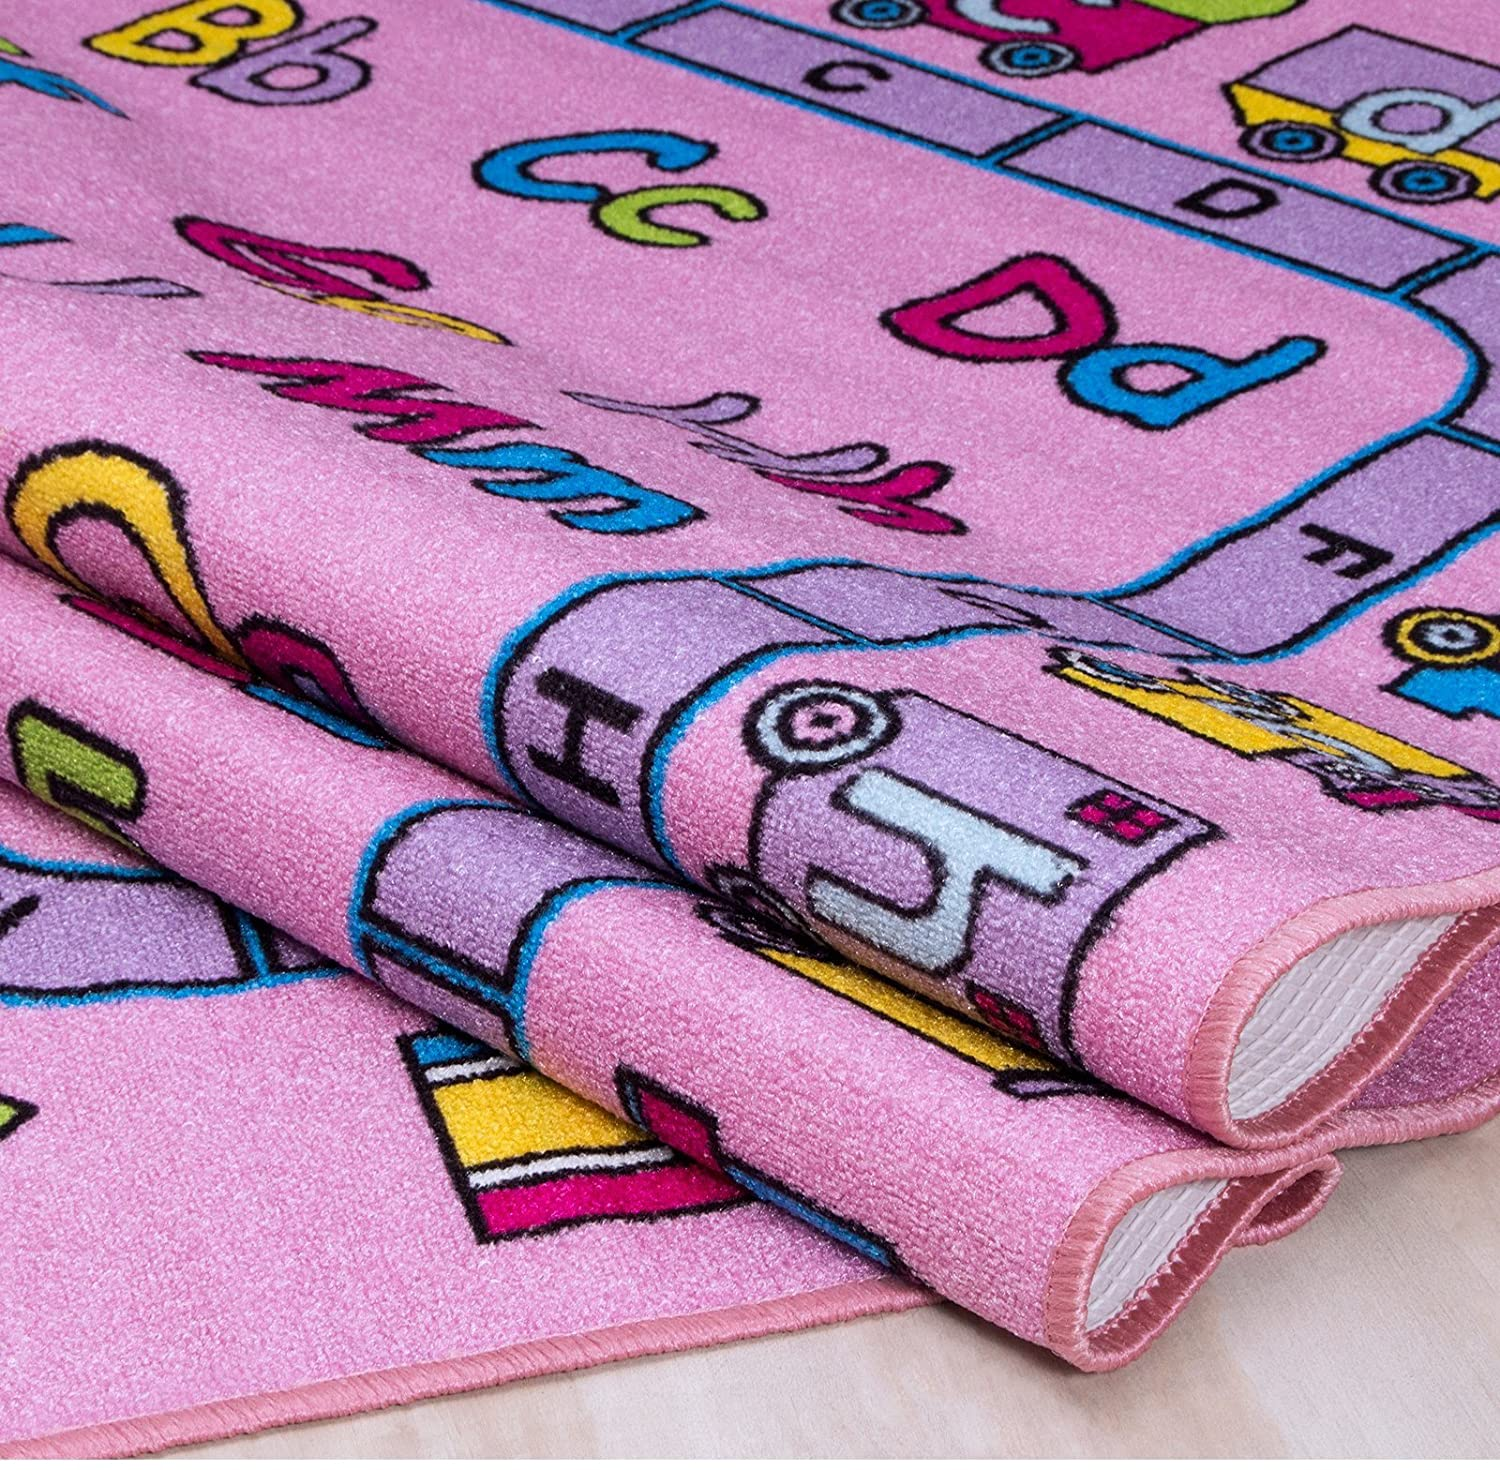 ABC Fun- Children's 5' X 7' Area Rug Kids Nursery Carpet Play Mat Pink